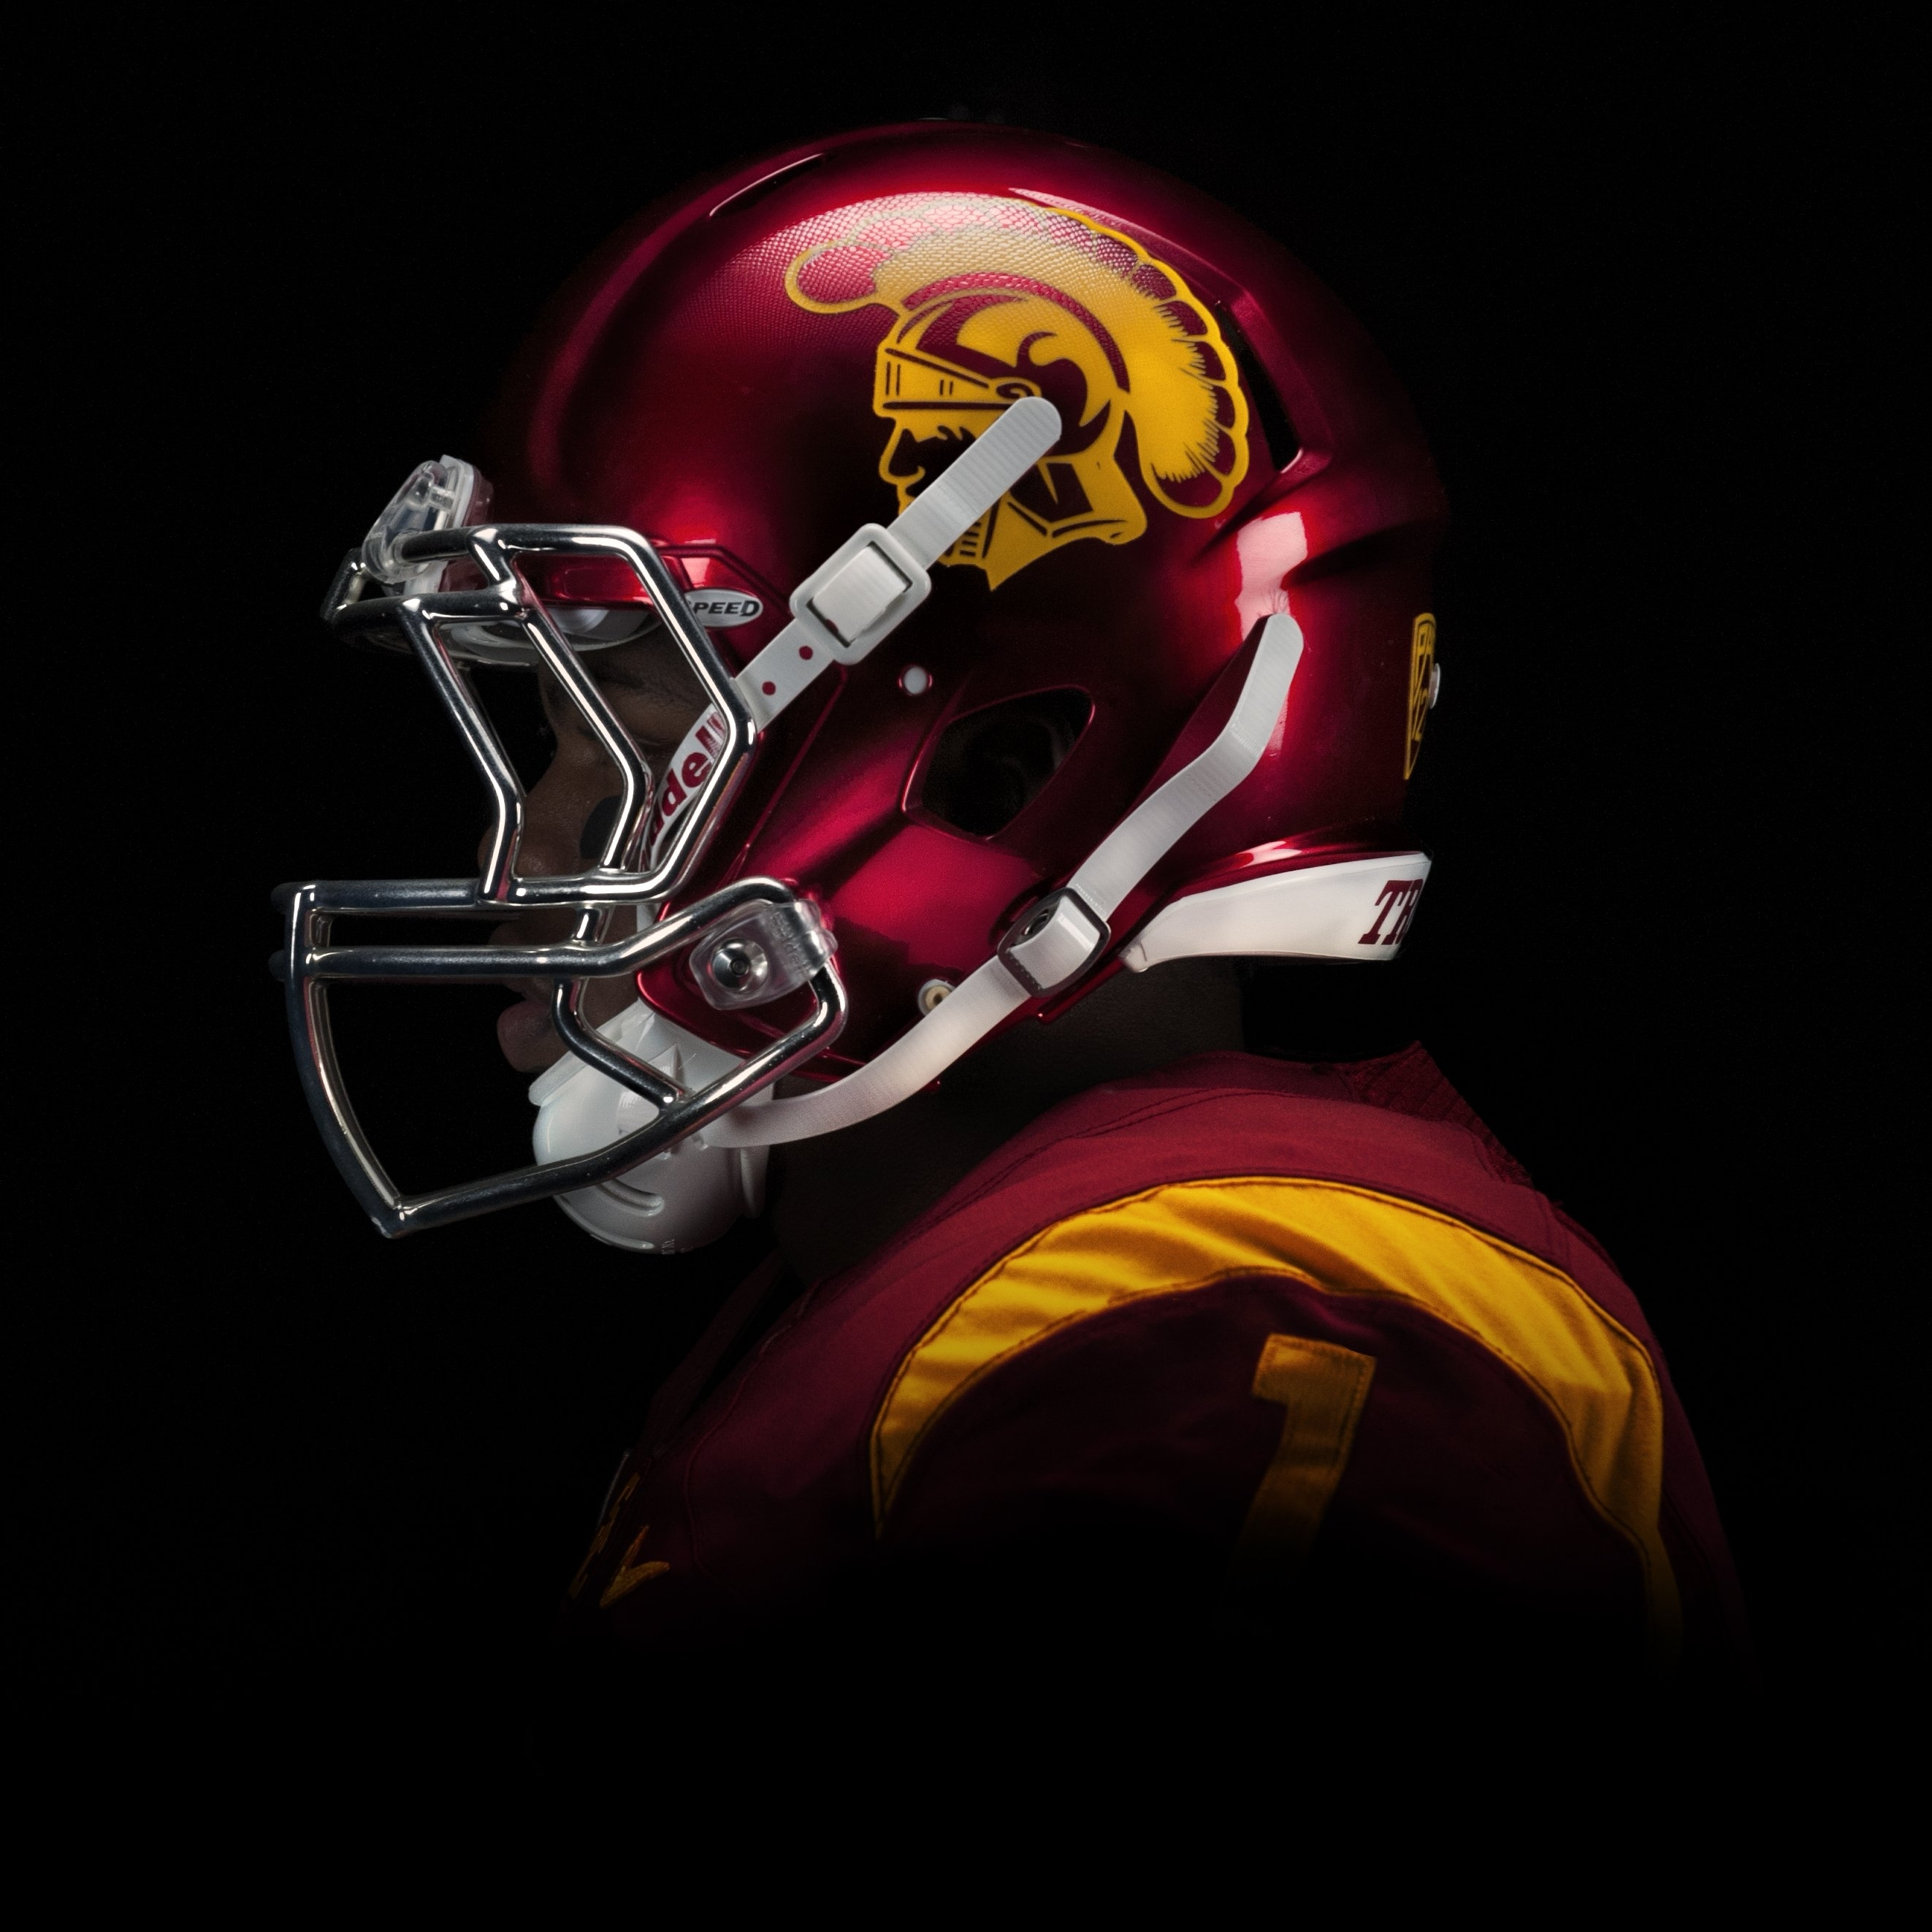 usc trojans college football wallpaper | 2645x2645 | 592781